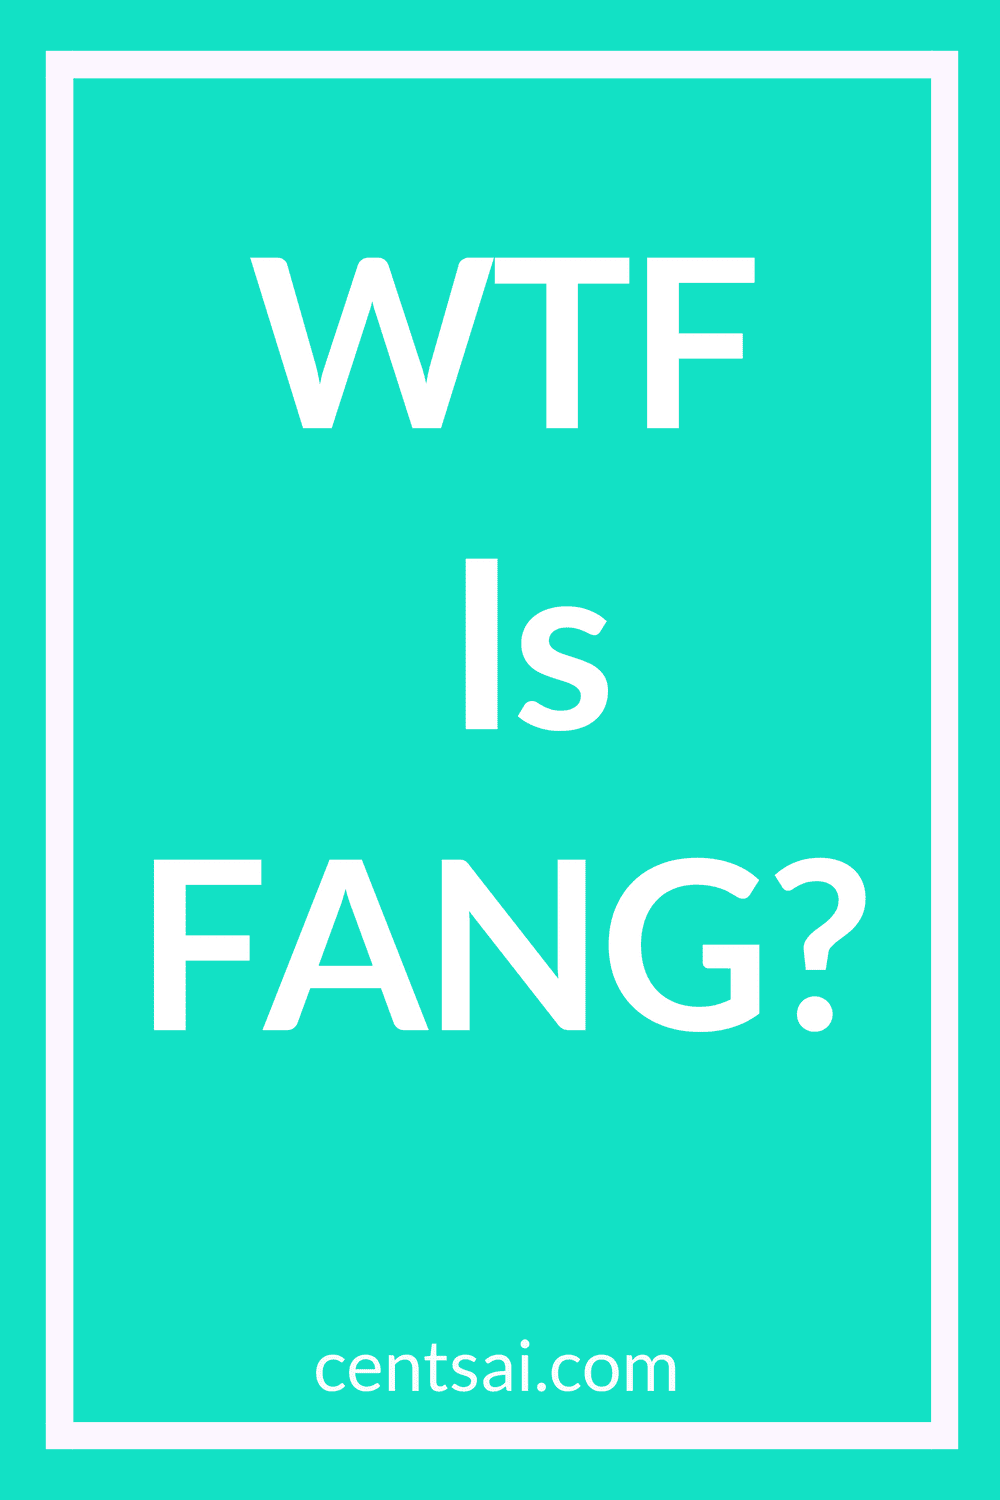 WTF Is FANG? What is FANG? No, it's not a club for vampires. But the investment opportunity excites many tech geeks. Join the club and learn all about it. #investment